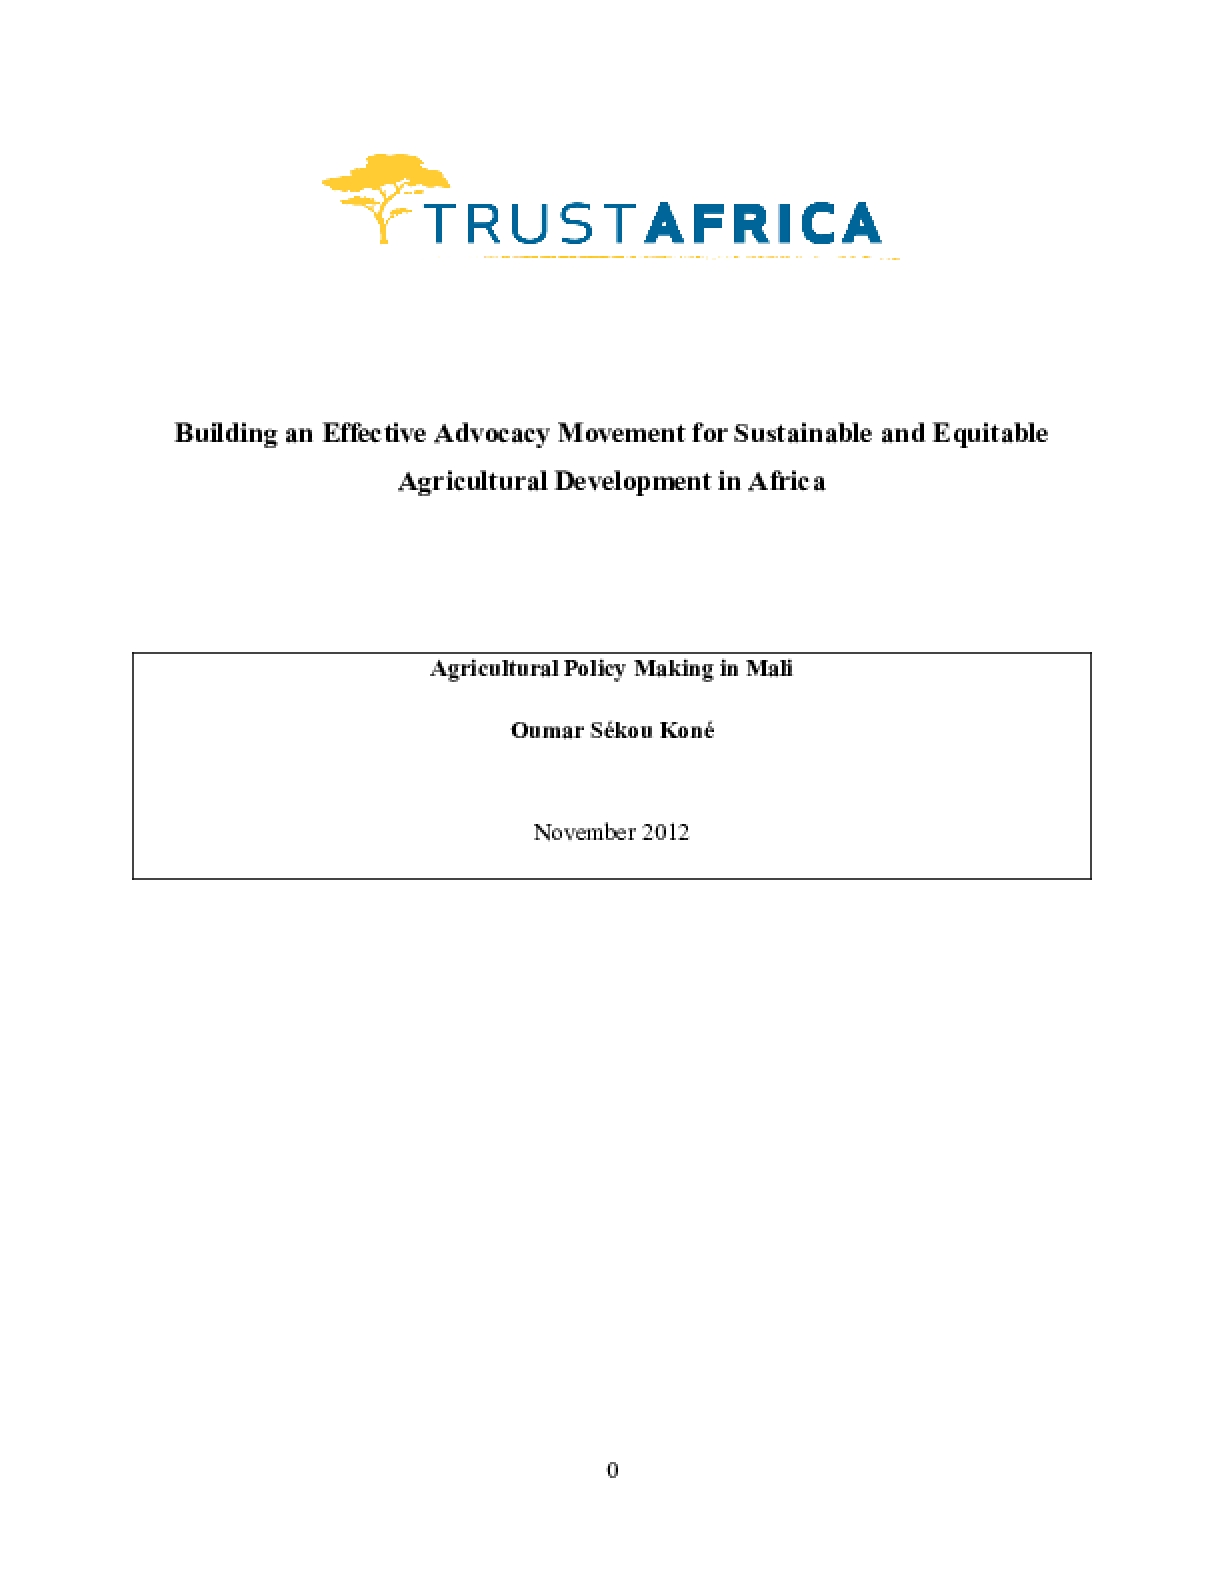 Building an Effective Advocacy Movement for Sustainable and Equitable Agricultural Development in Africa: Agricultural Policy Making In Mali